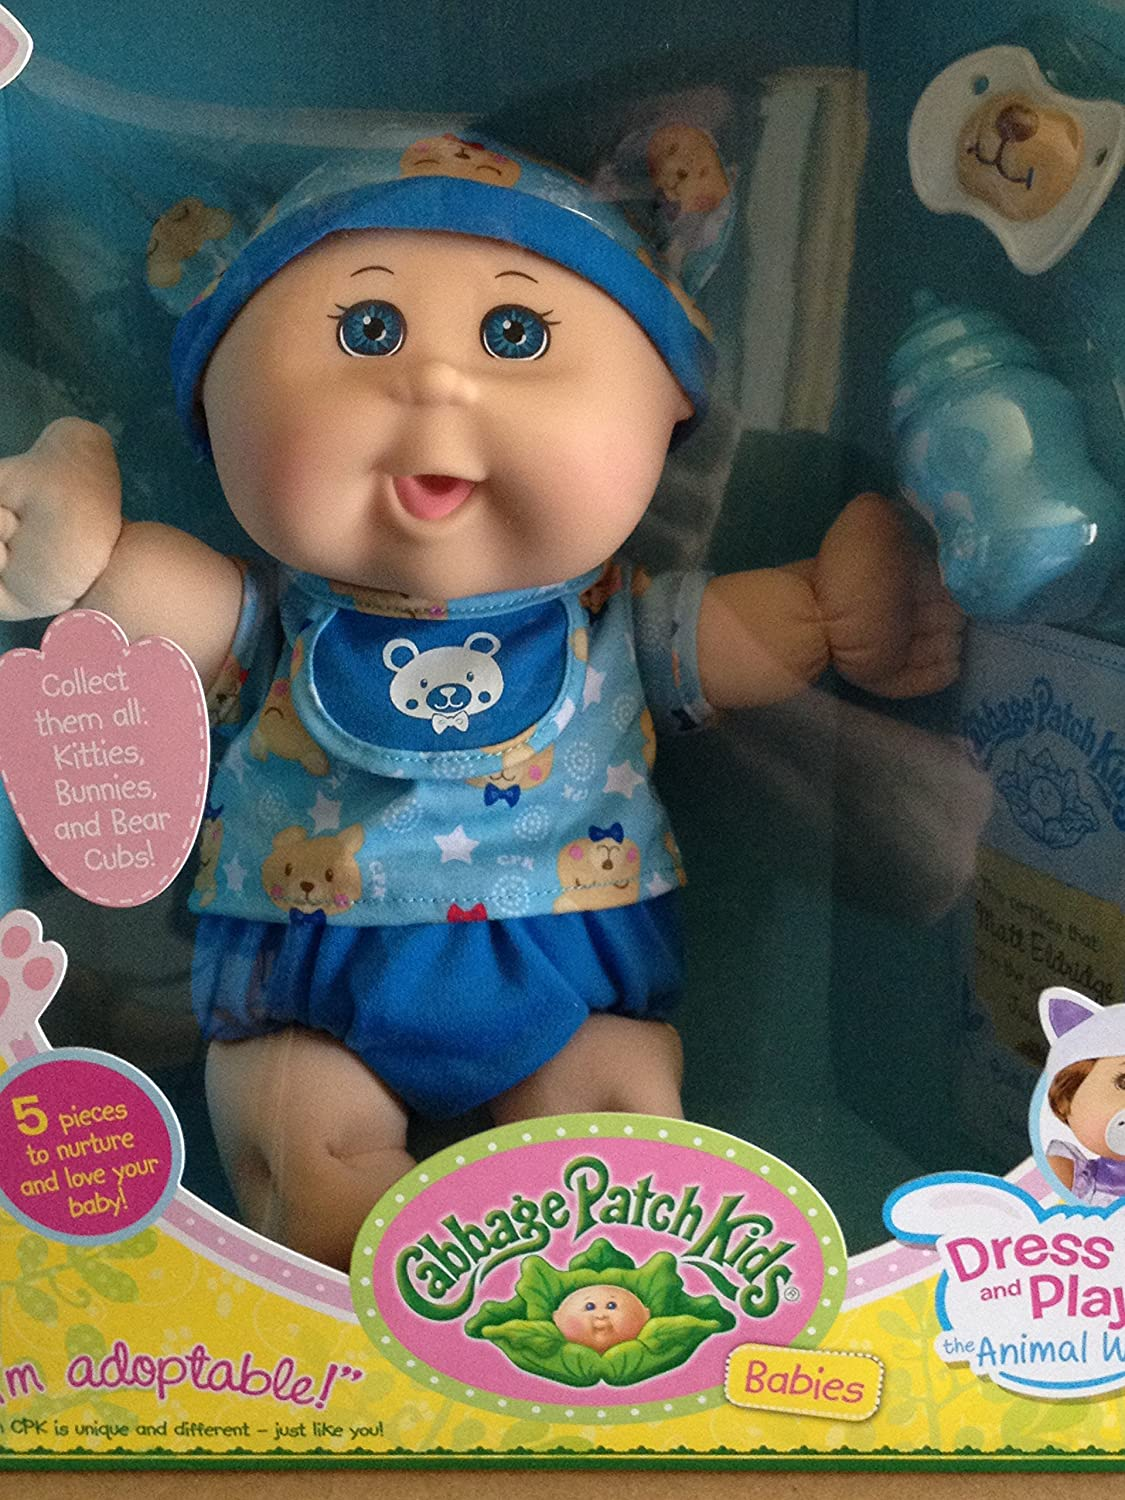 Amazon Com Cabbage Patch Kids Babies Dress Up And Play The Animal